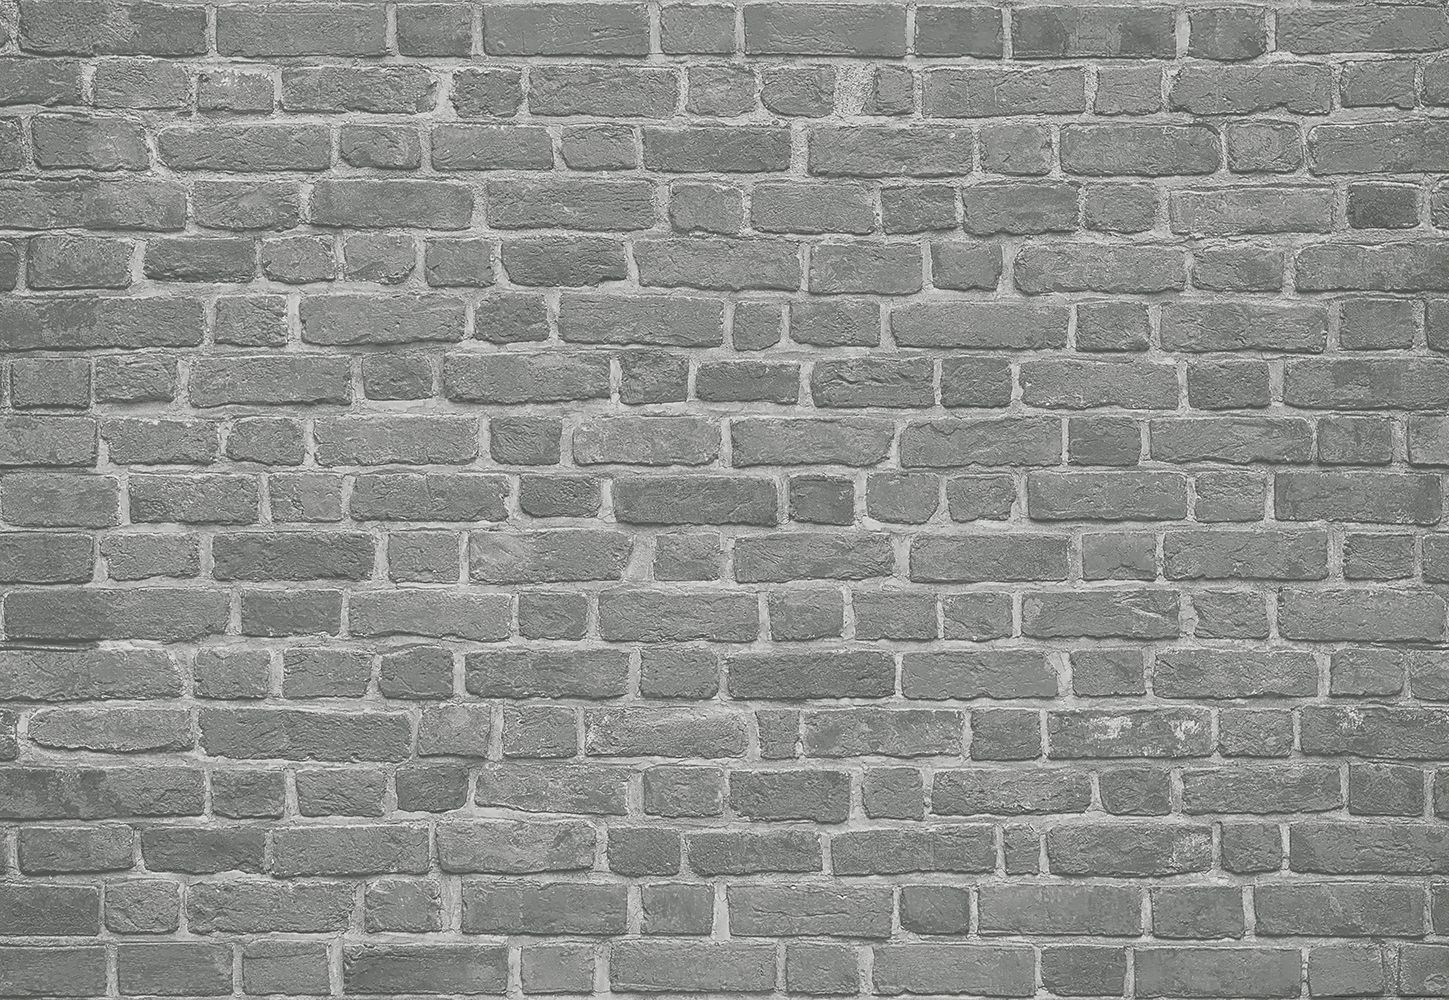 Valokuvatapetti Idealdecor Digital Brick Wall Black 4-osaa 5200-4V-1 254x368 cm